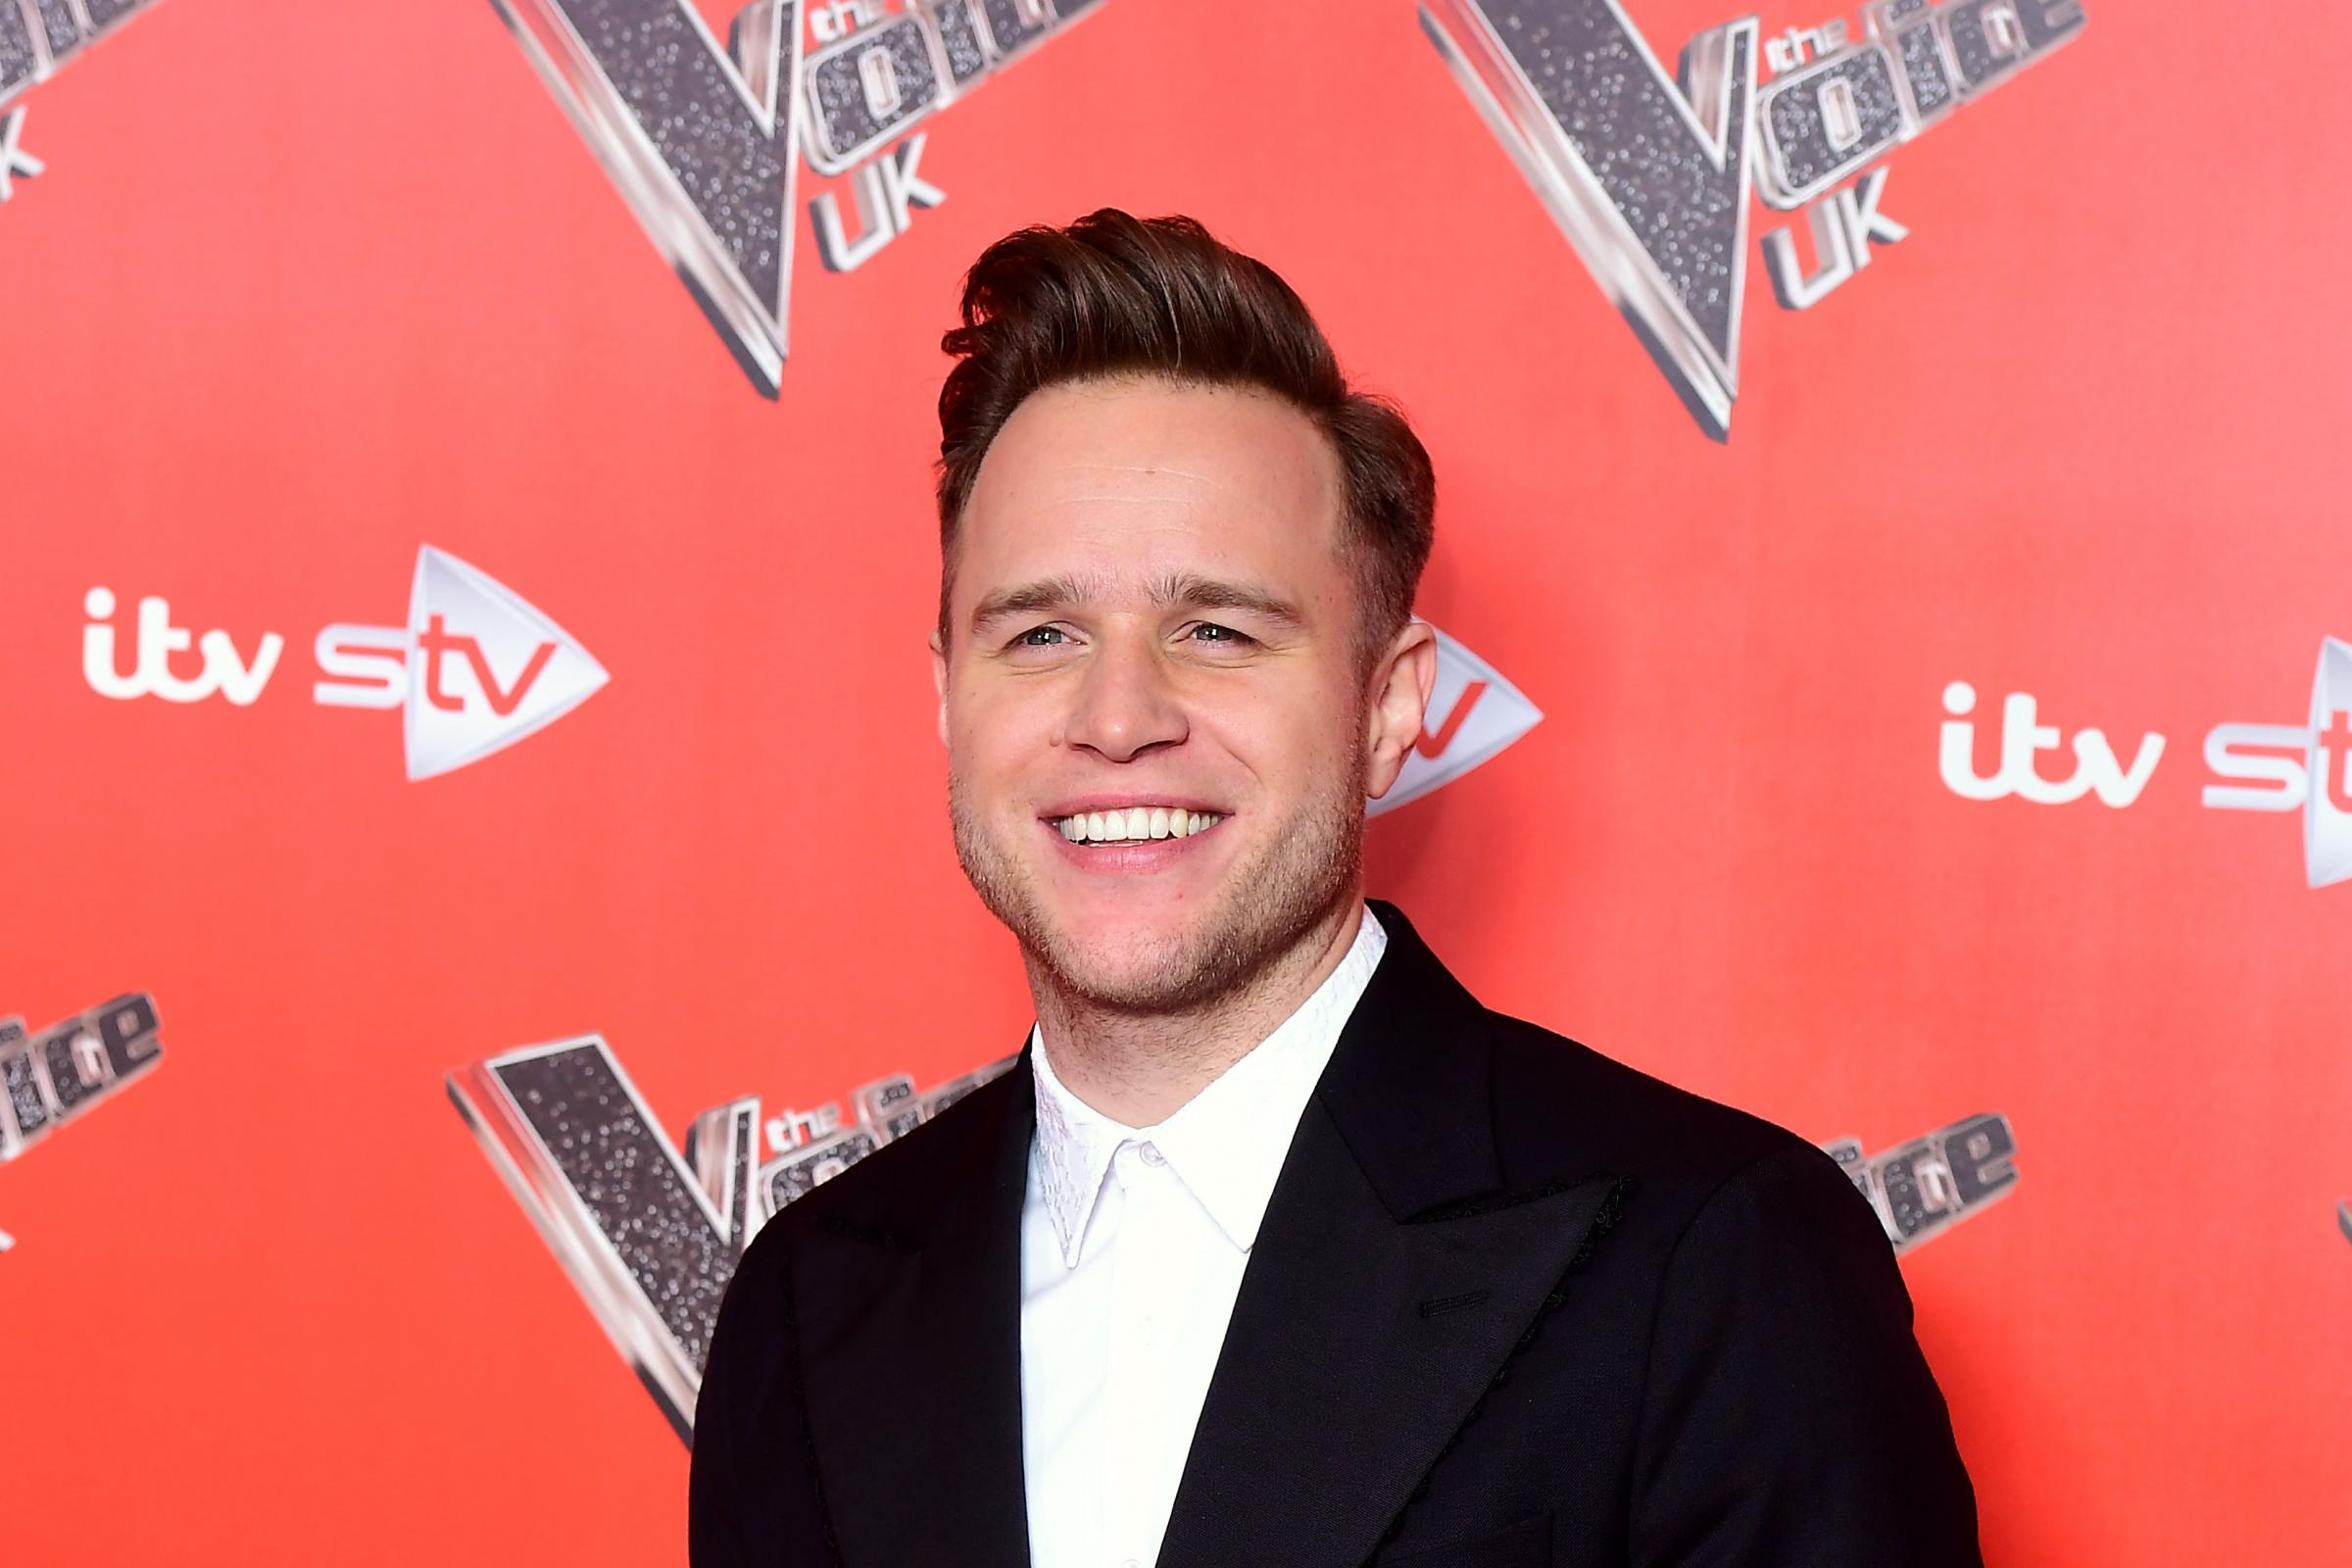 Olly Murs has joined The Voice (Ian West/PA)